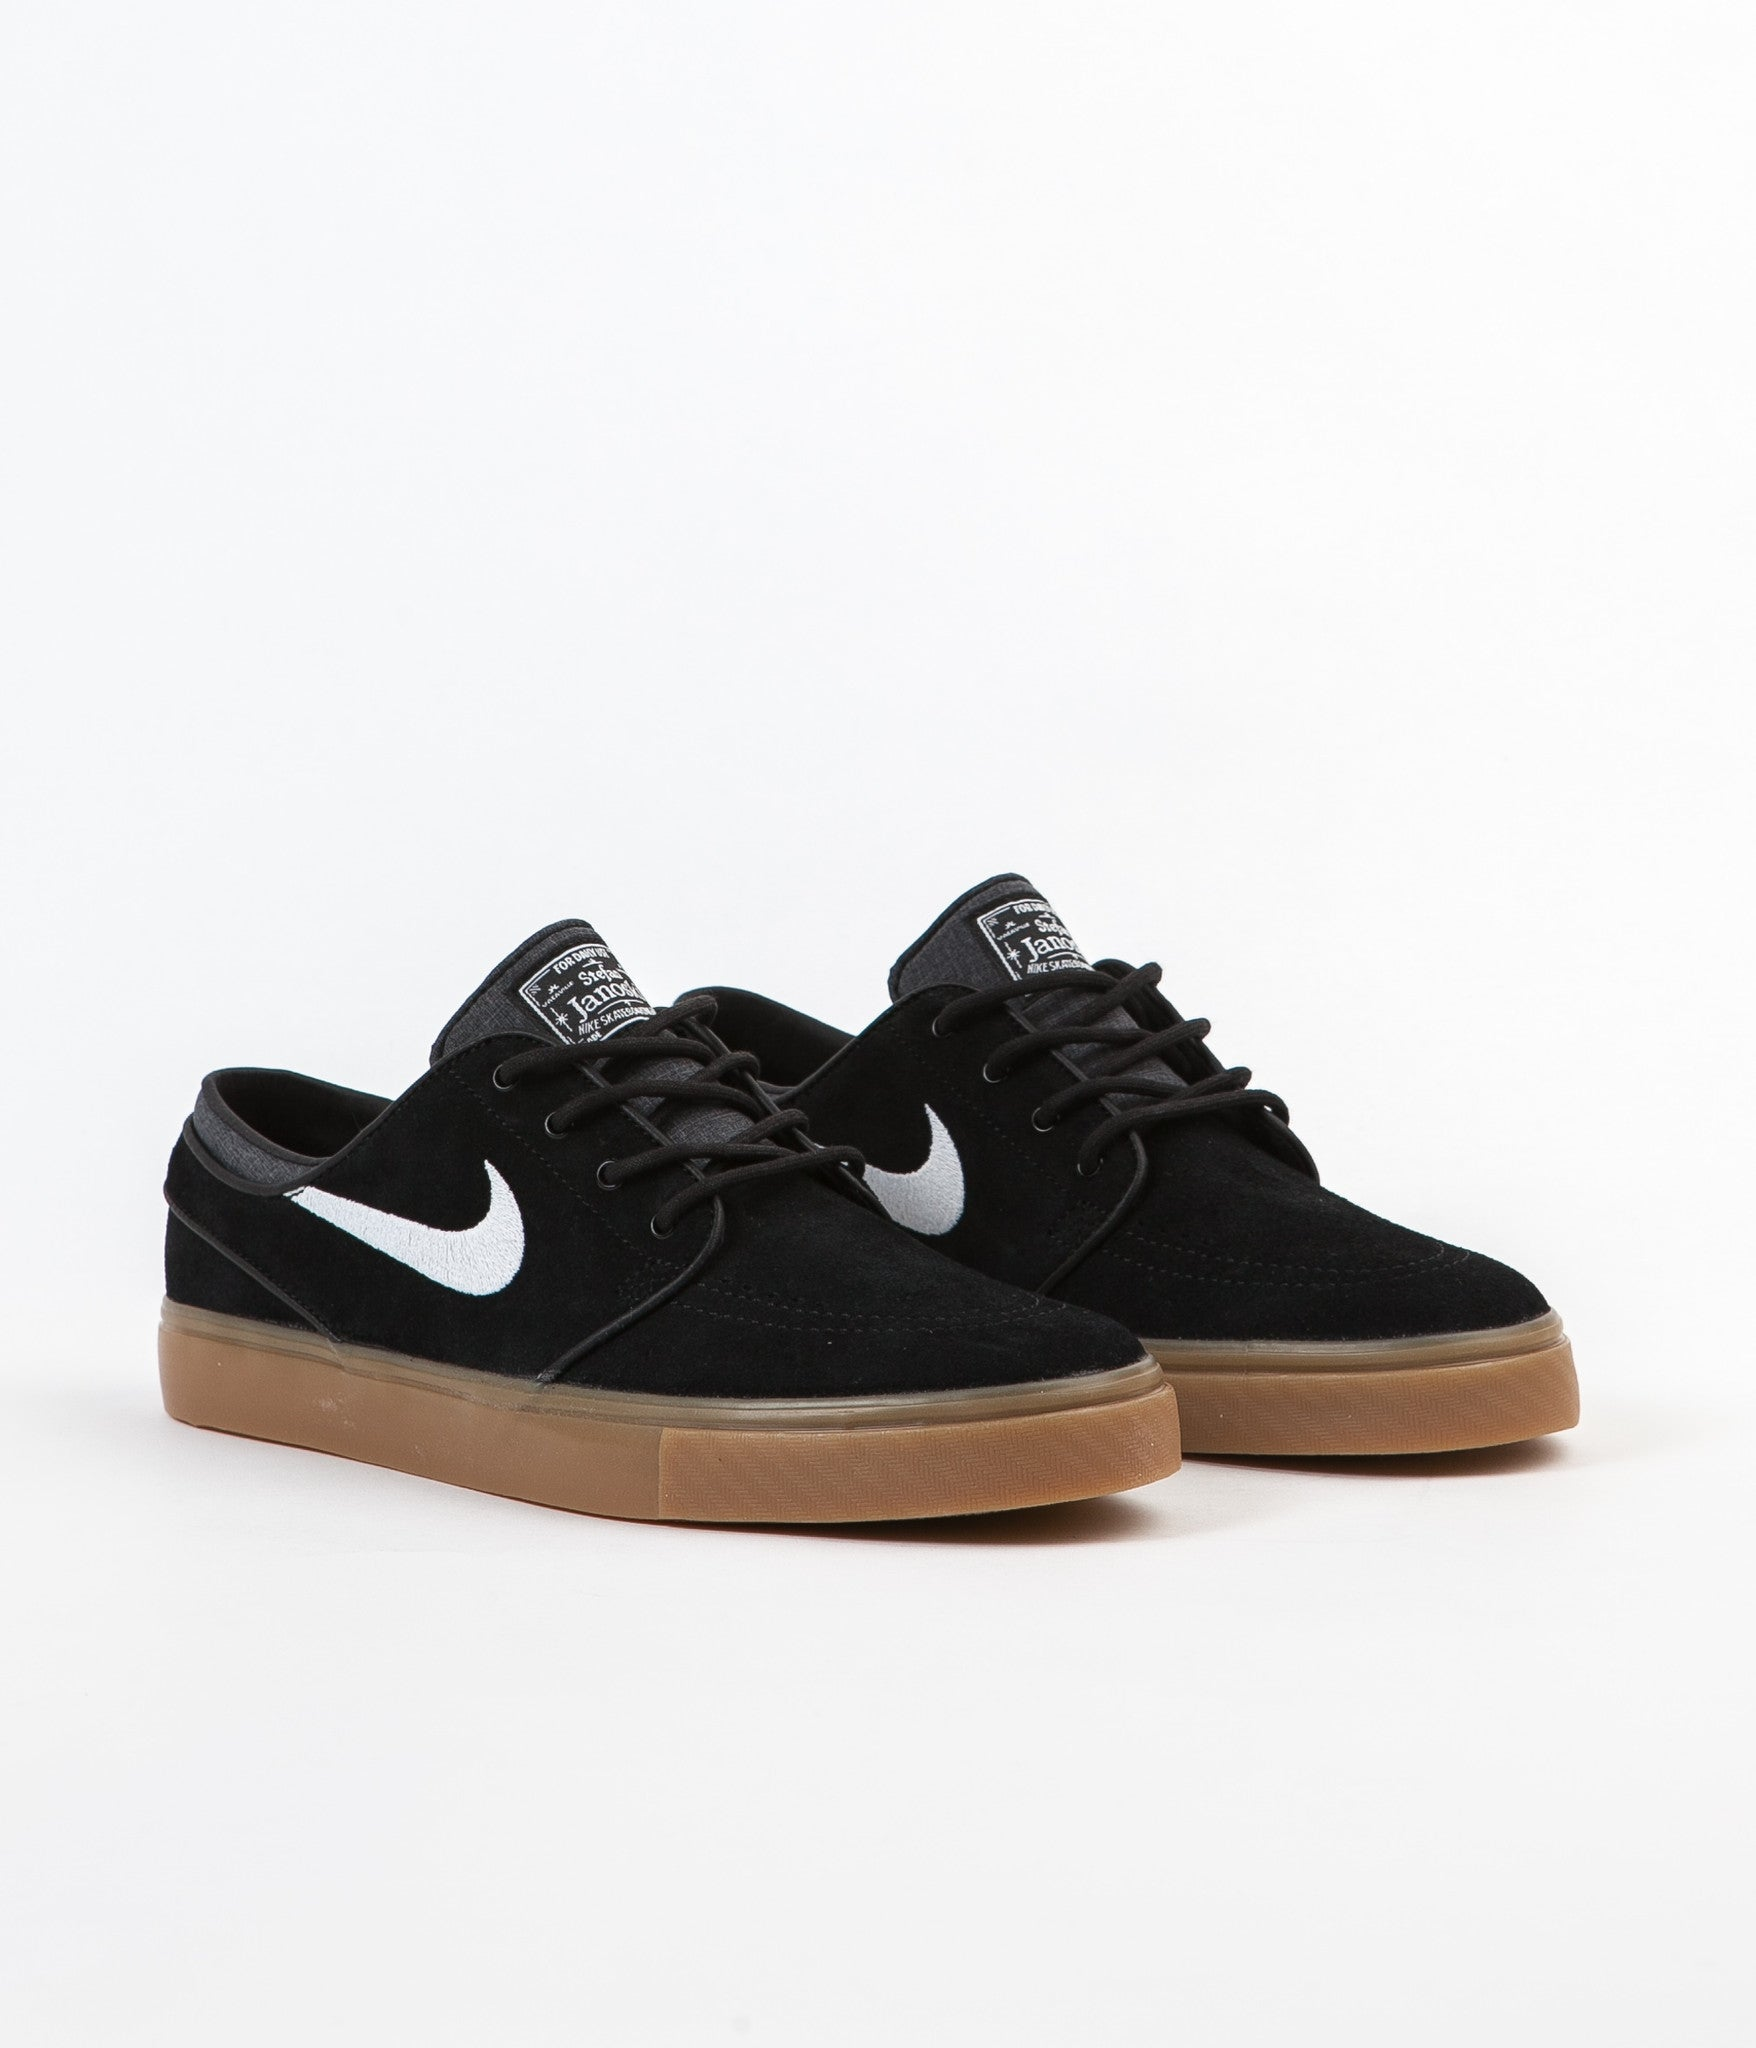 cheap for discount 64779 6e596 ... canada nike sb stefan janoski shoes black white gum light brown d6acd  81fa4